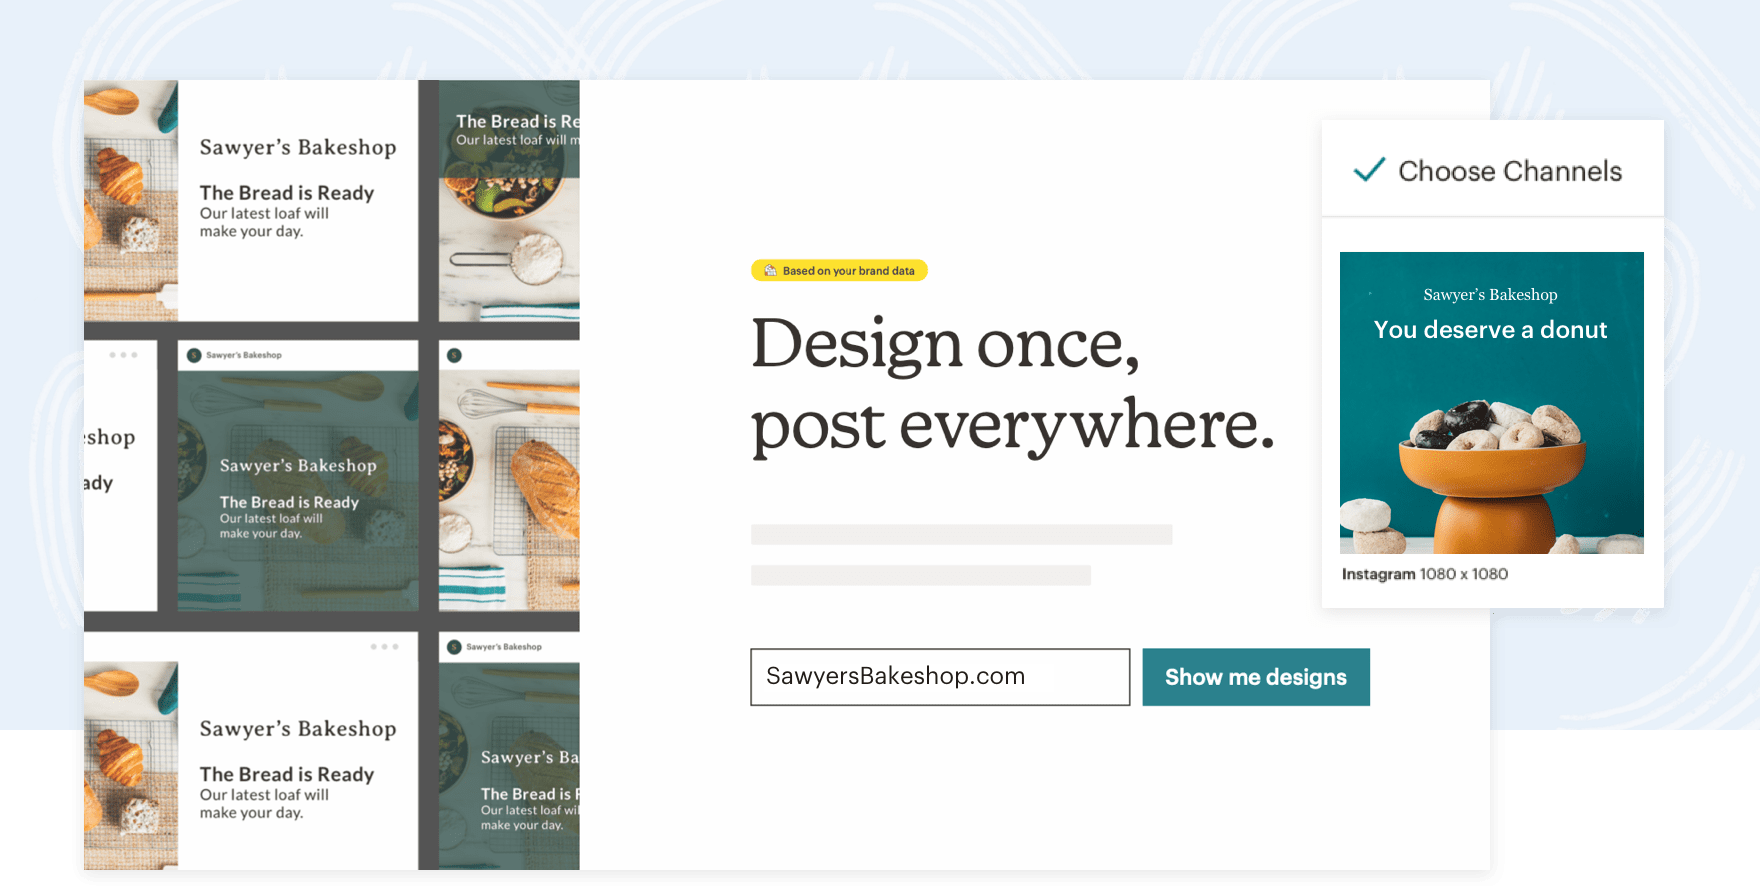 Design once, post everywhere.